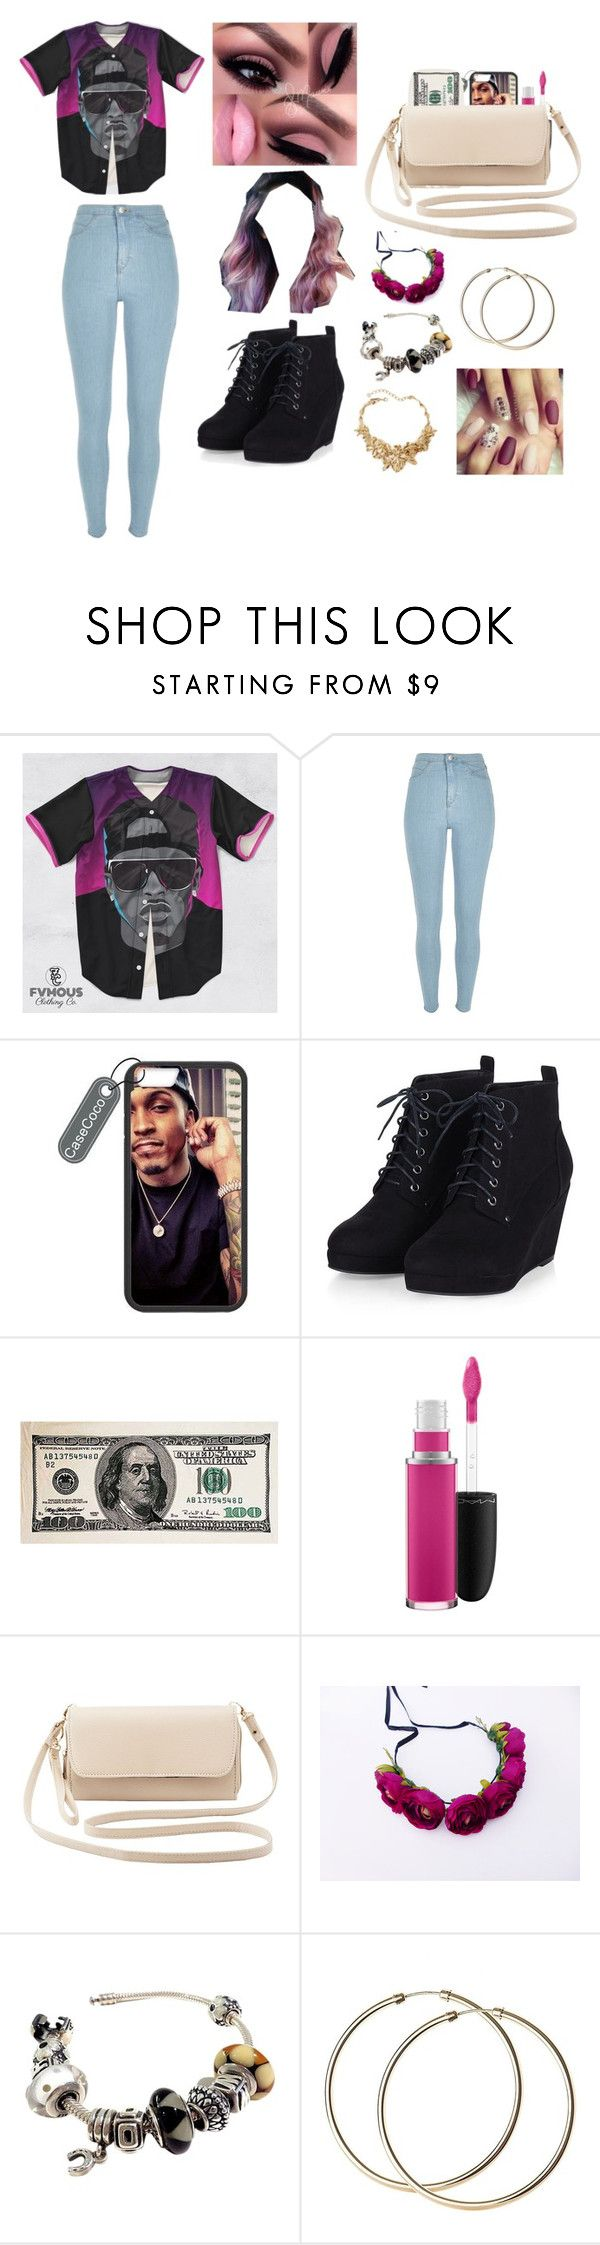 """August alsina concert"" by princeton2001 ❤ liked on Polyvore featuring River Island, MAC Cosmetics, Charlotte Russe, Pandora, Oscar de la Renta, women's clothing, women, female, woman and misses"